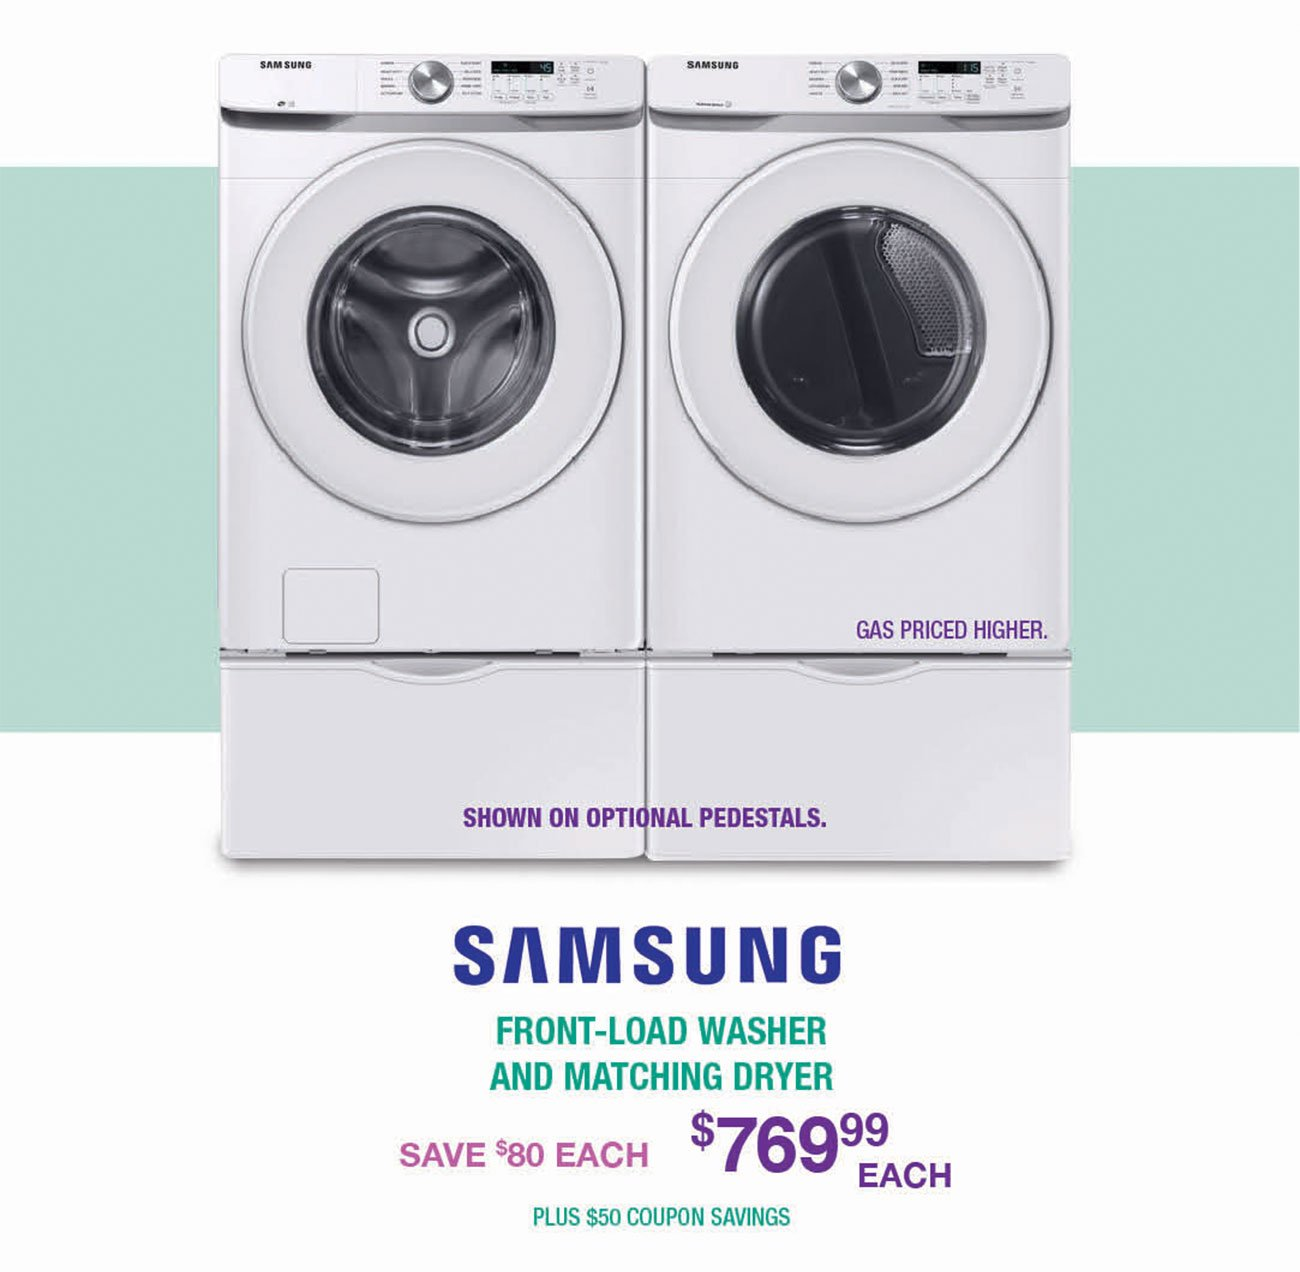 Samsung-Front-Load-Washer-Matching-Dryer-UIRV